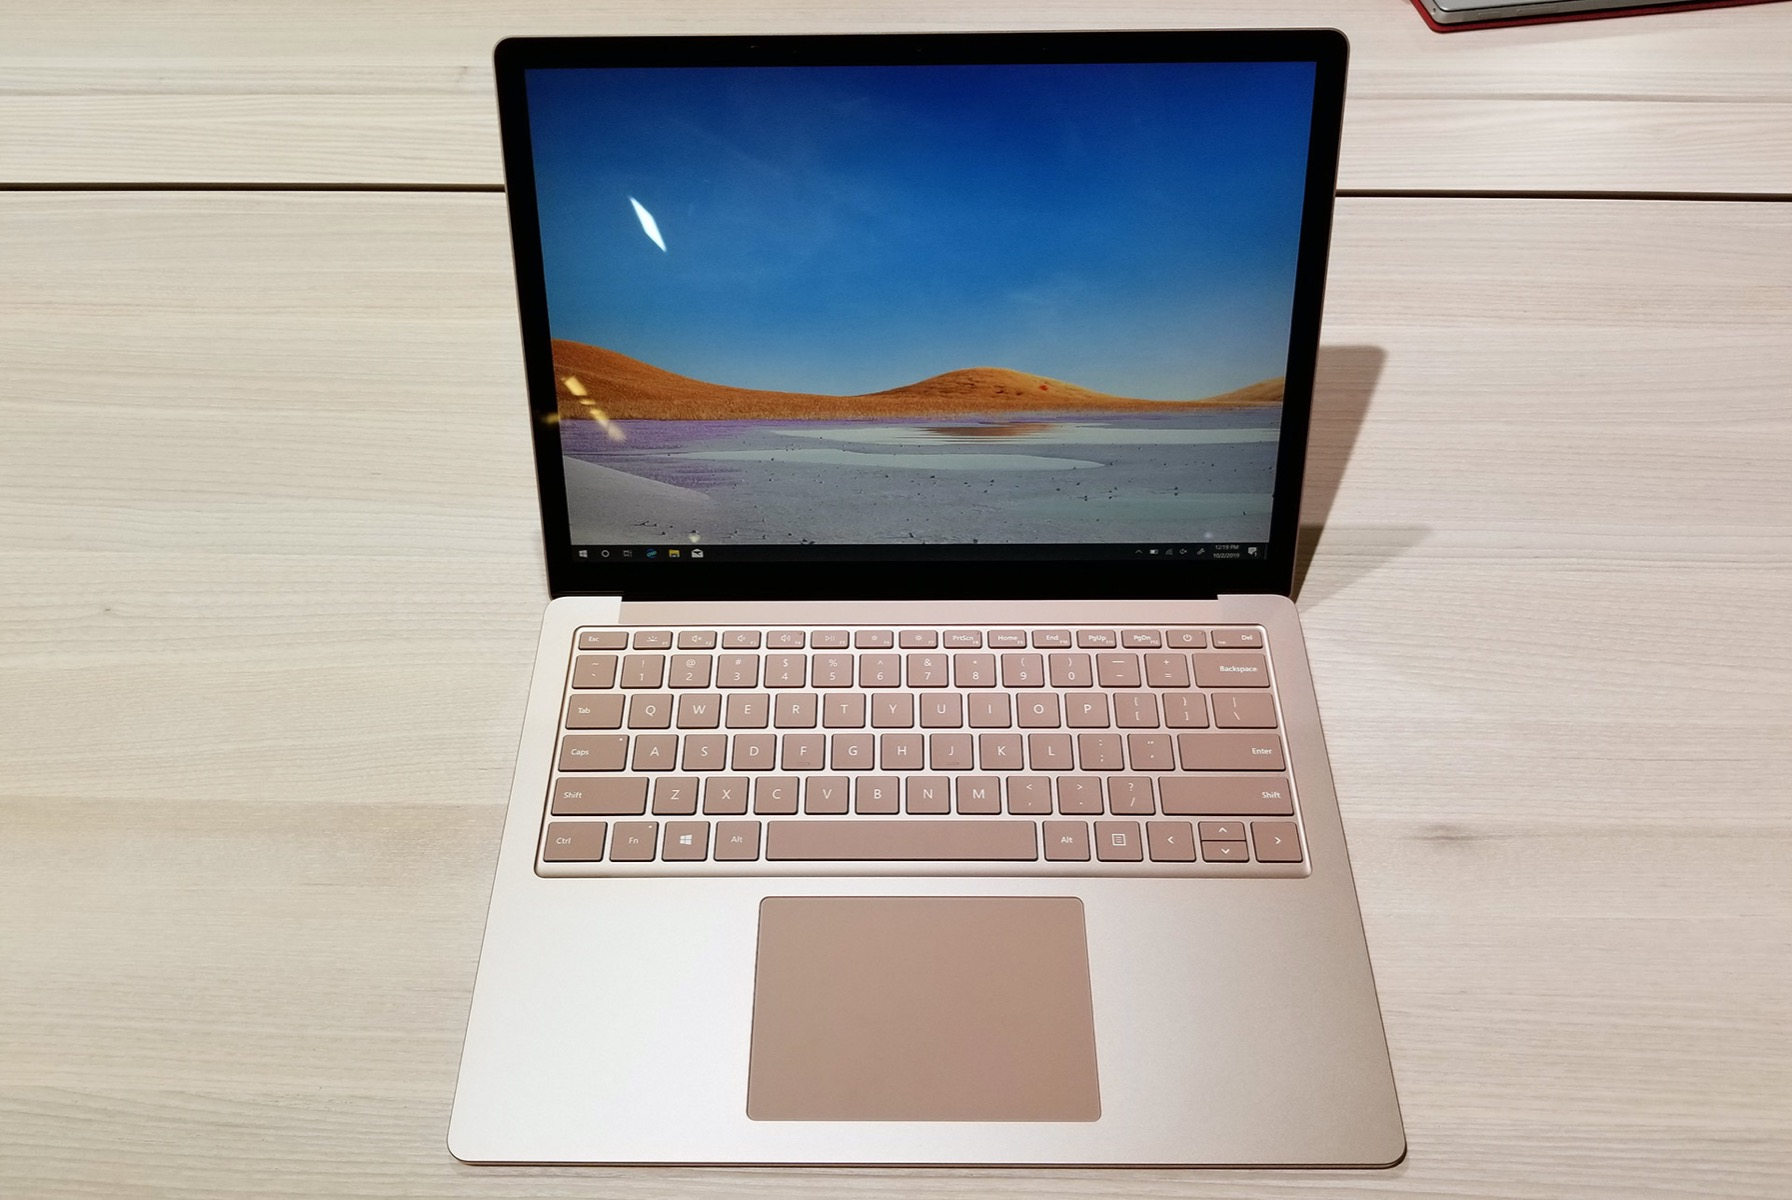 Check Out Microsoft's Surface Pro 7, Surface Pro X, And Surface Laptop 3 As We Go Hands-On